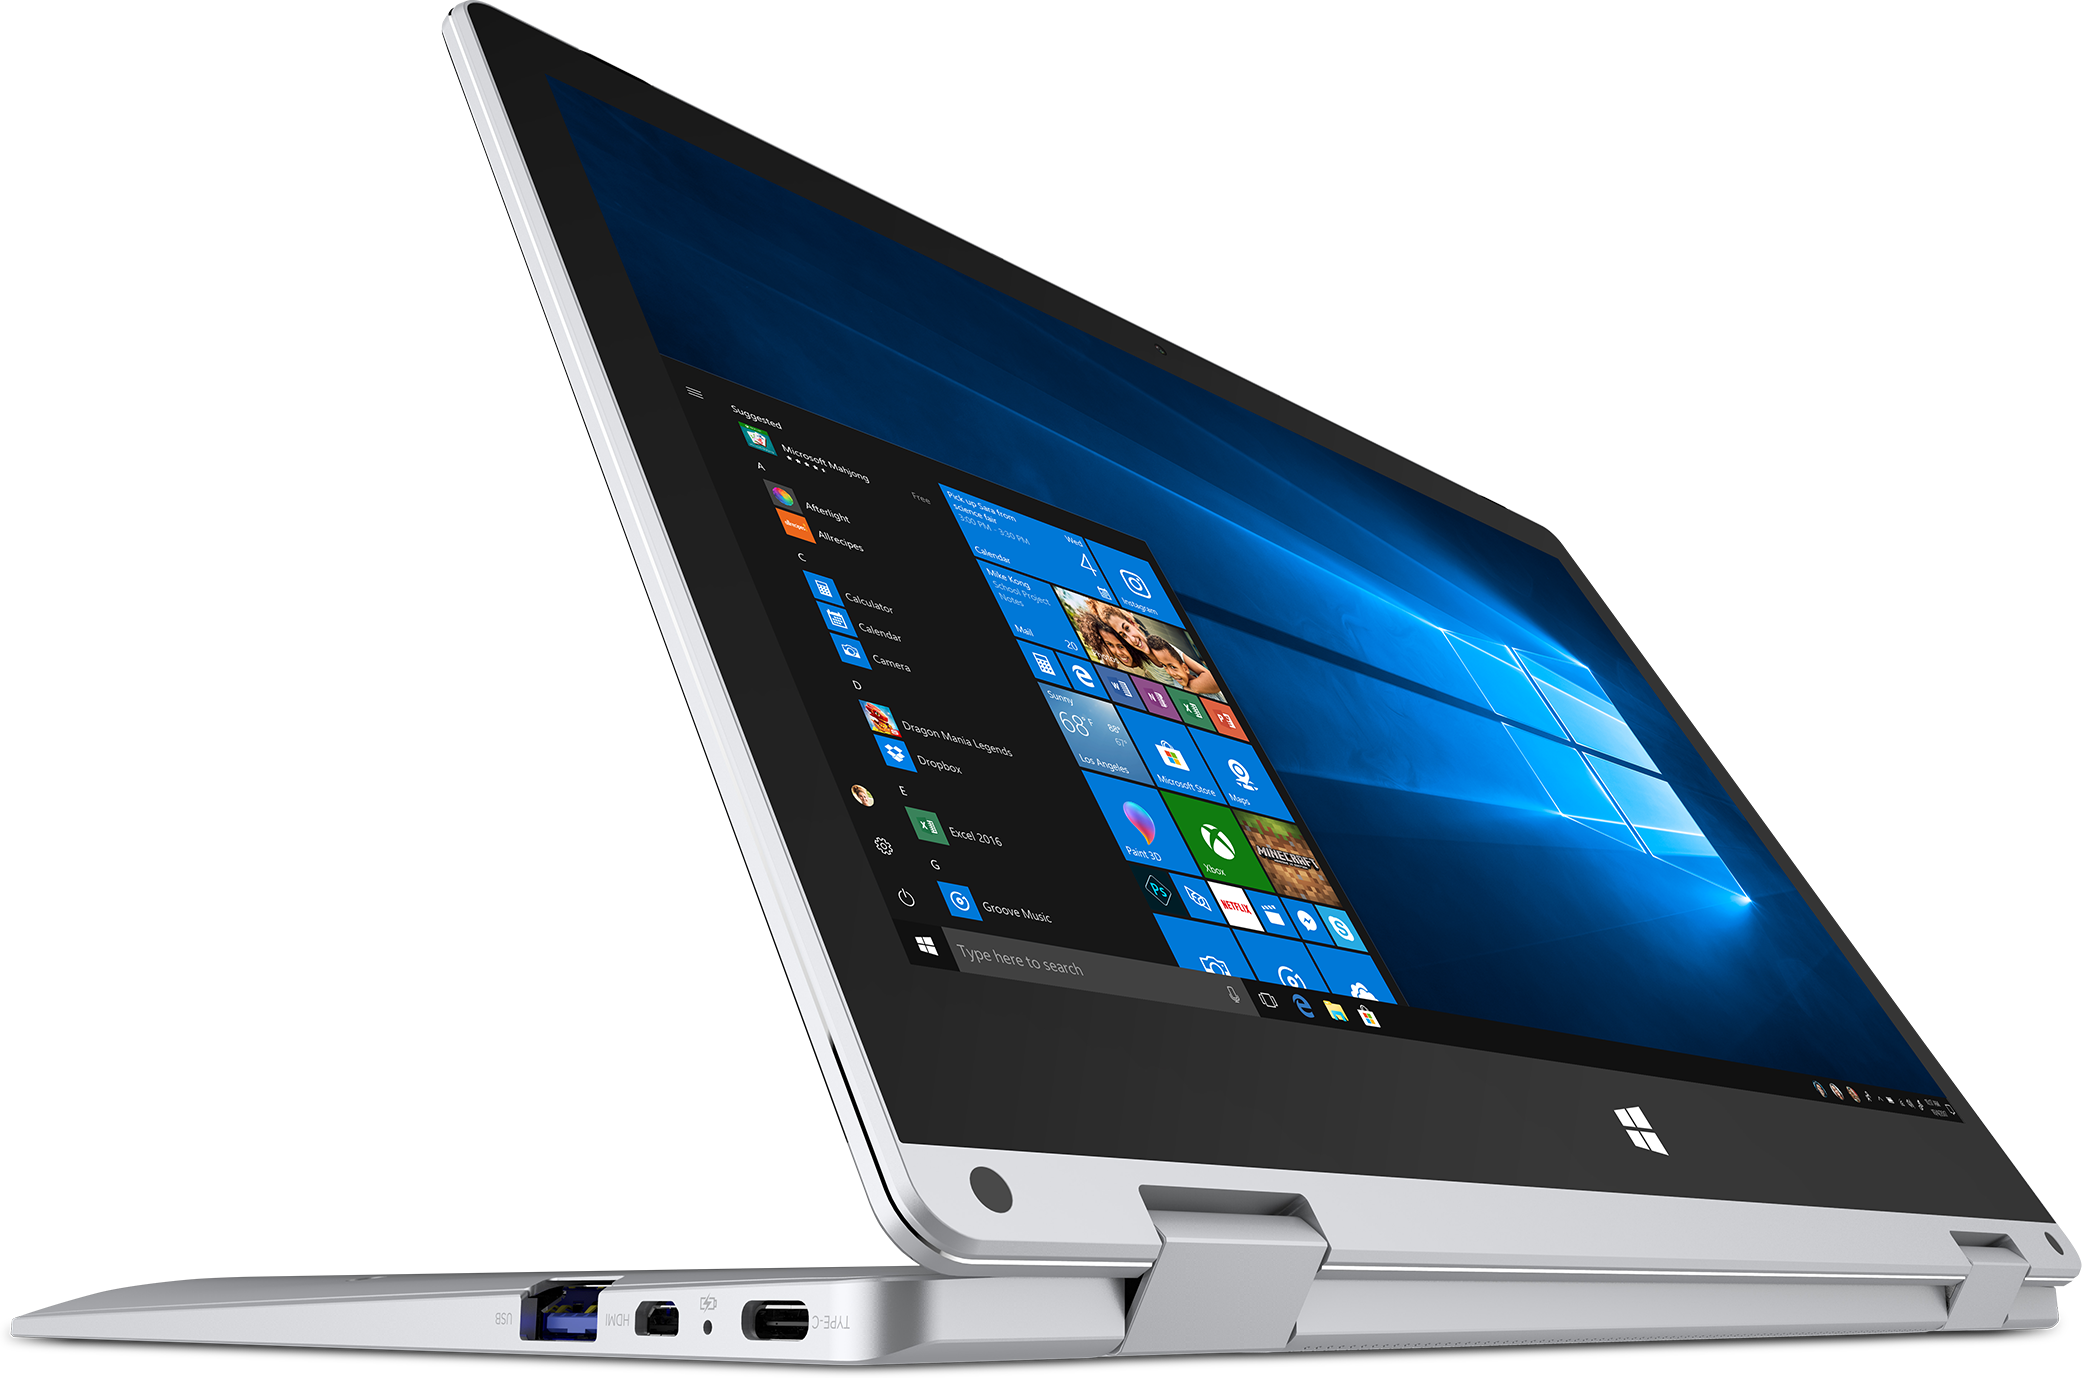 TREKSTORPRIMEBOOK C11B2 in 1 PC• 11.6-inch360° convertibleFull HDIPStouchscreen • Intel Celeron N3350 • 4GB memory/32GB eMMC • Up to6.5hours battery life •Free Office 365 Personal (1-Year Subscription)